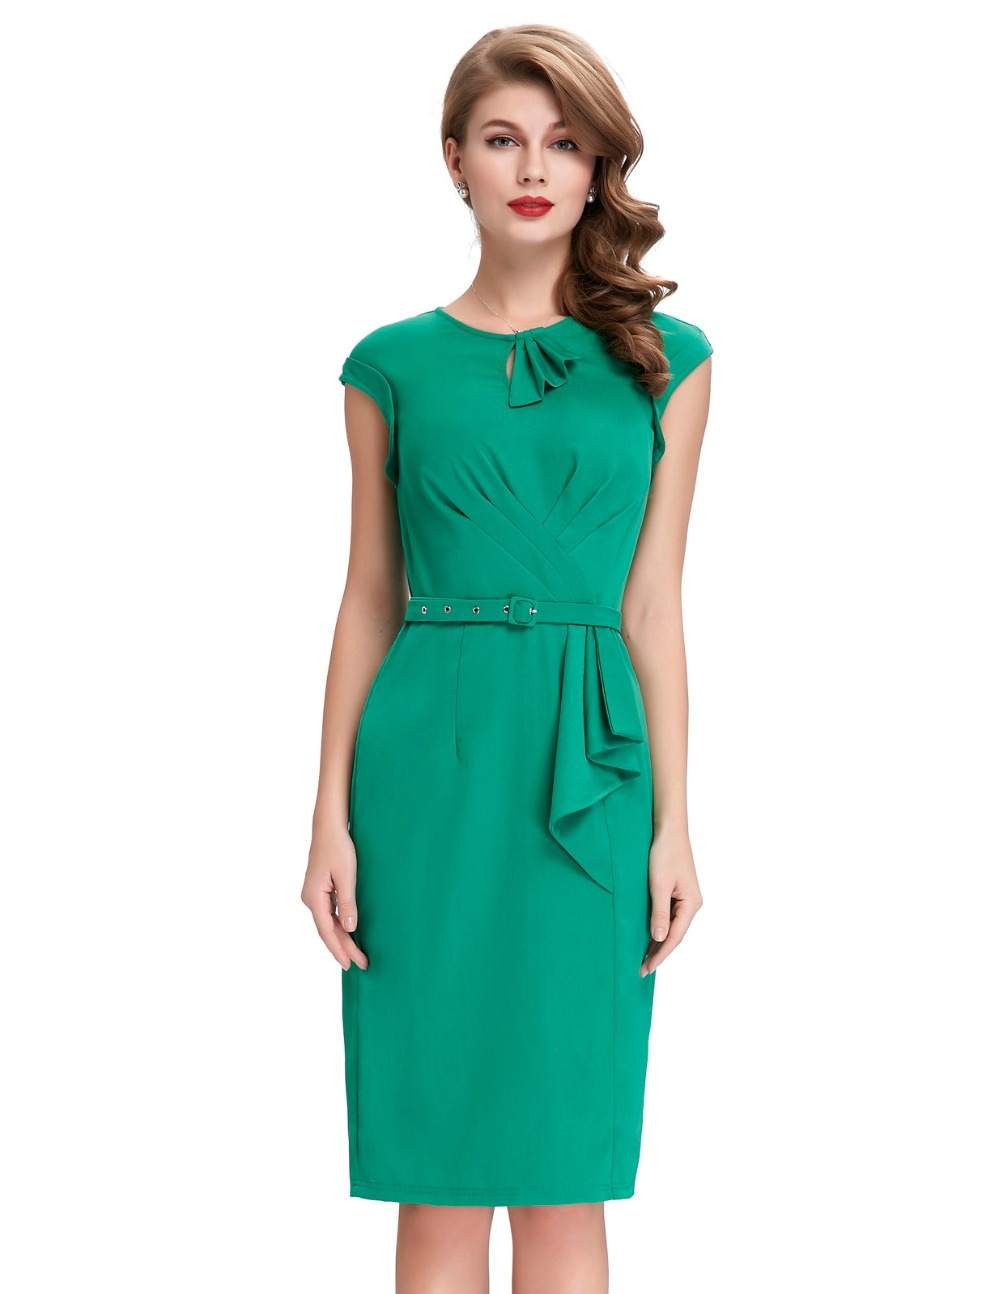 Prom dress 50s style ladies - Dress Nelly blog - Prom dresses